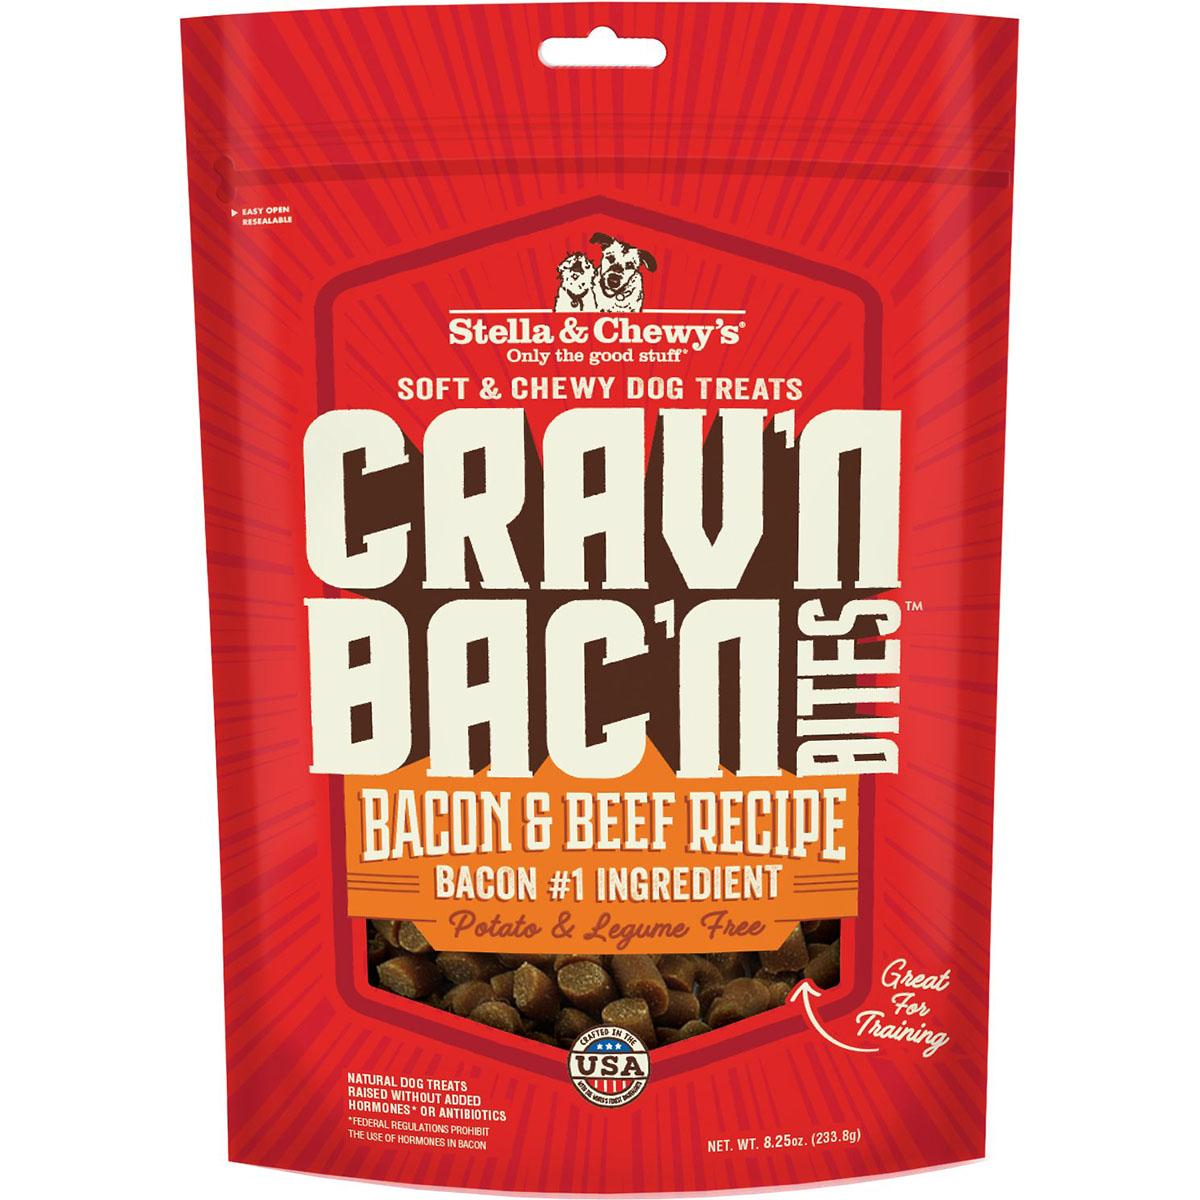 Stella & Chewy's Crav'n Bac'n Bites Bacon & Beef Recipe Dog Treats